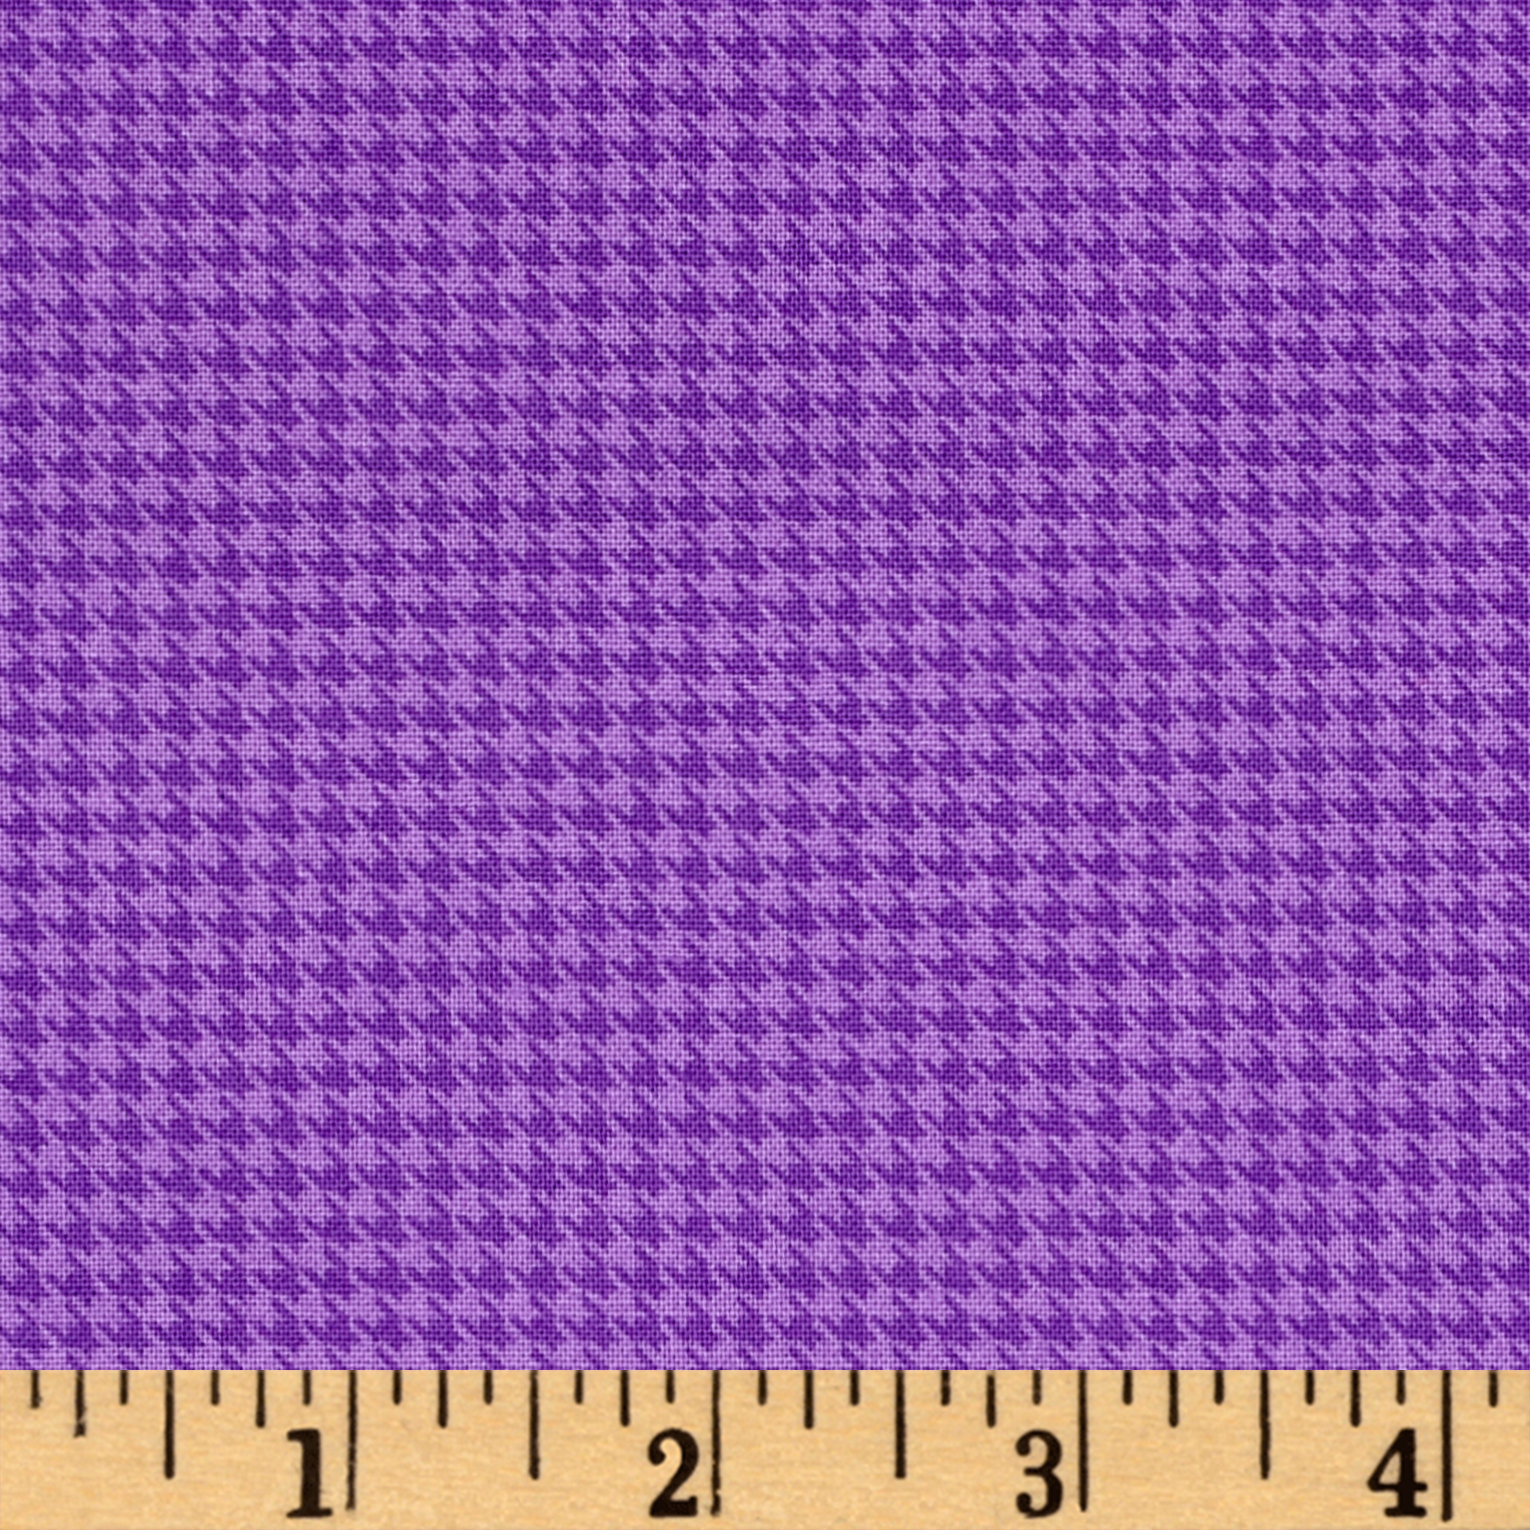 Monster Trucks Monster Tooth Purple People Eater Fabric by RJR in USA